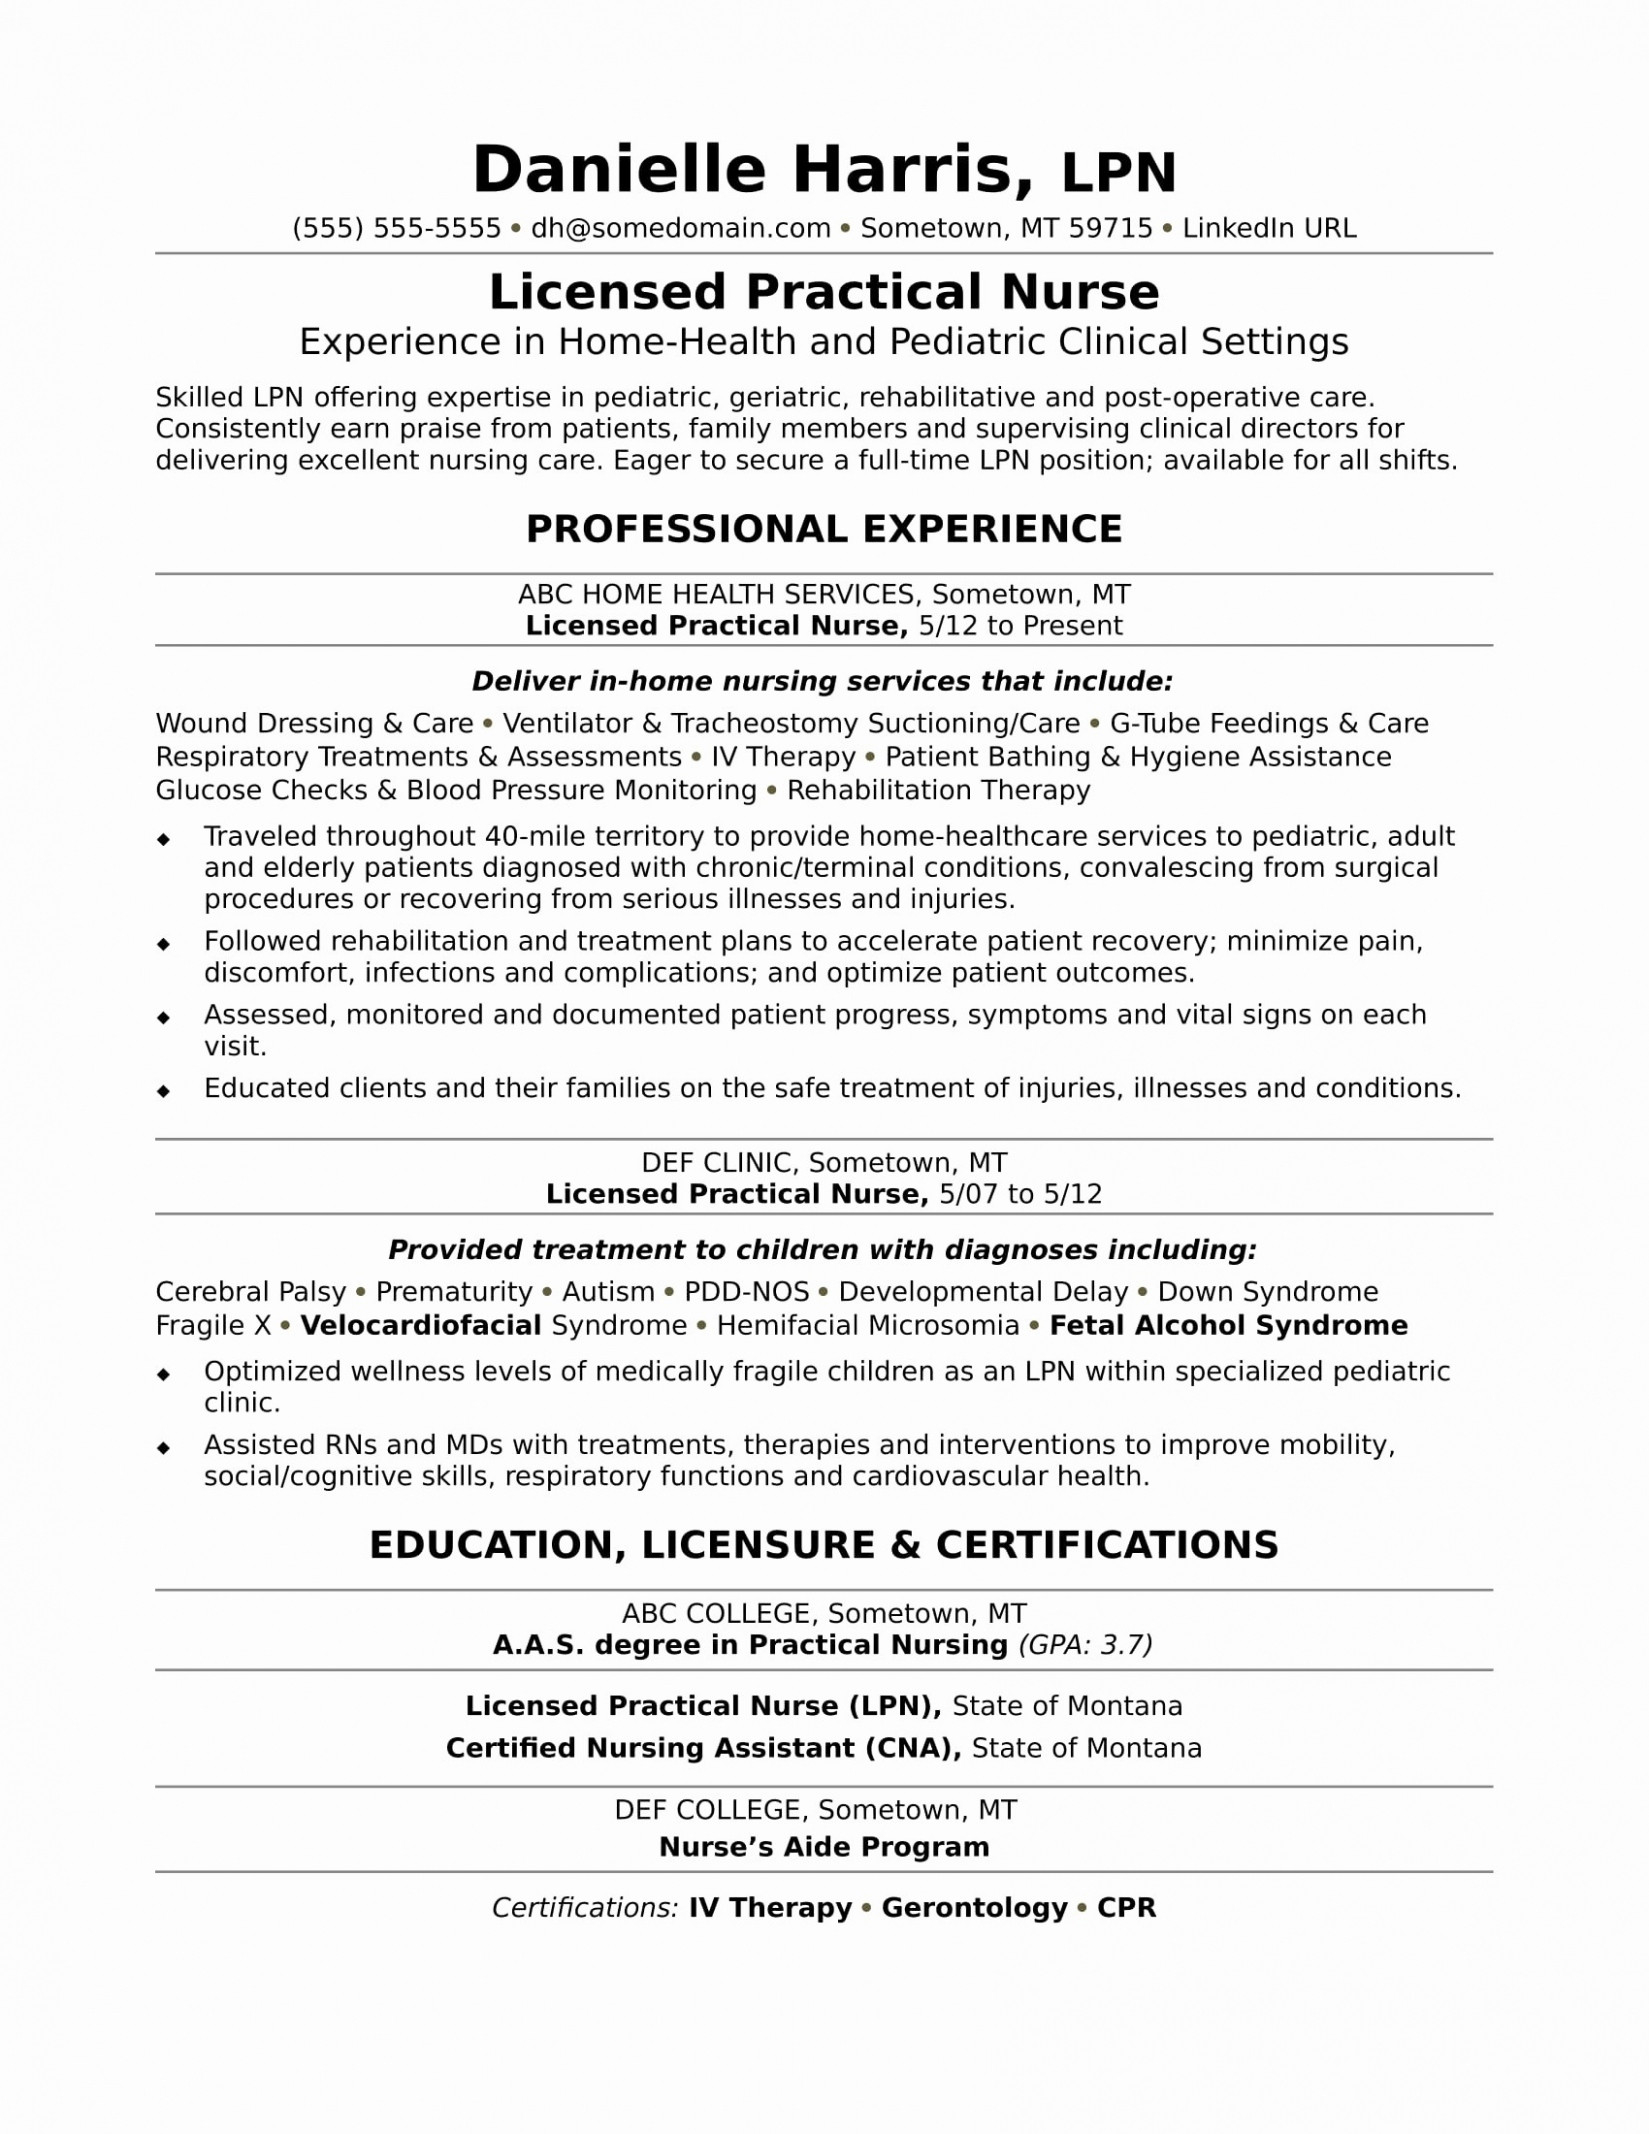 Certified Professional Resume Writer - Best Professional Nursing Resume Writers Vcuregistry